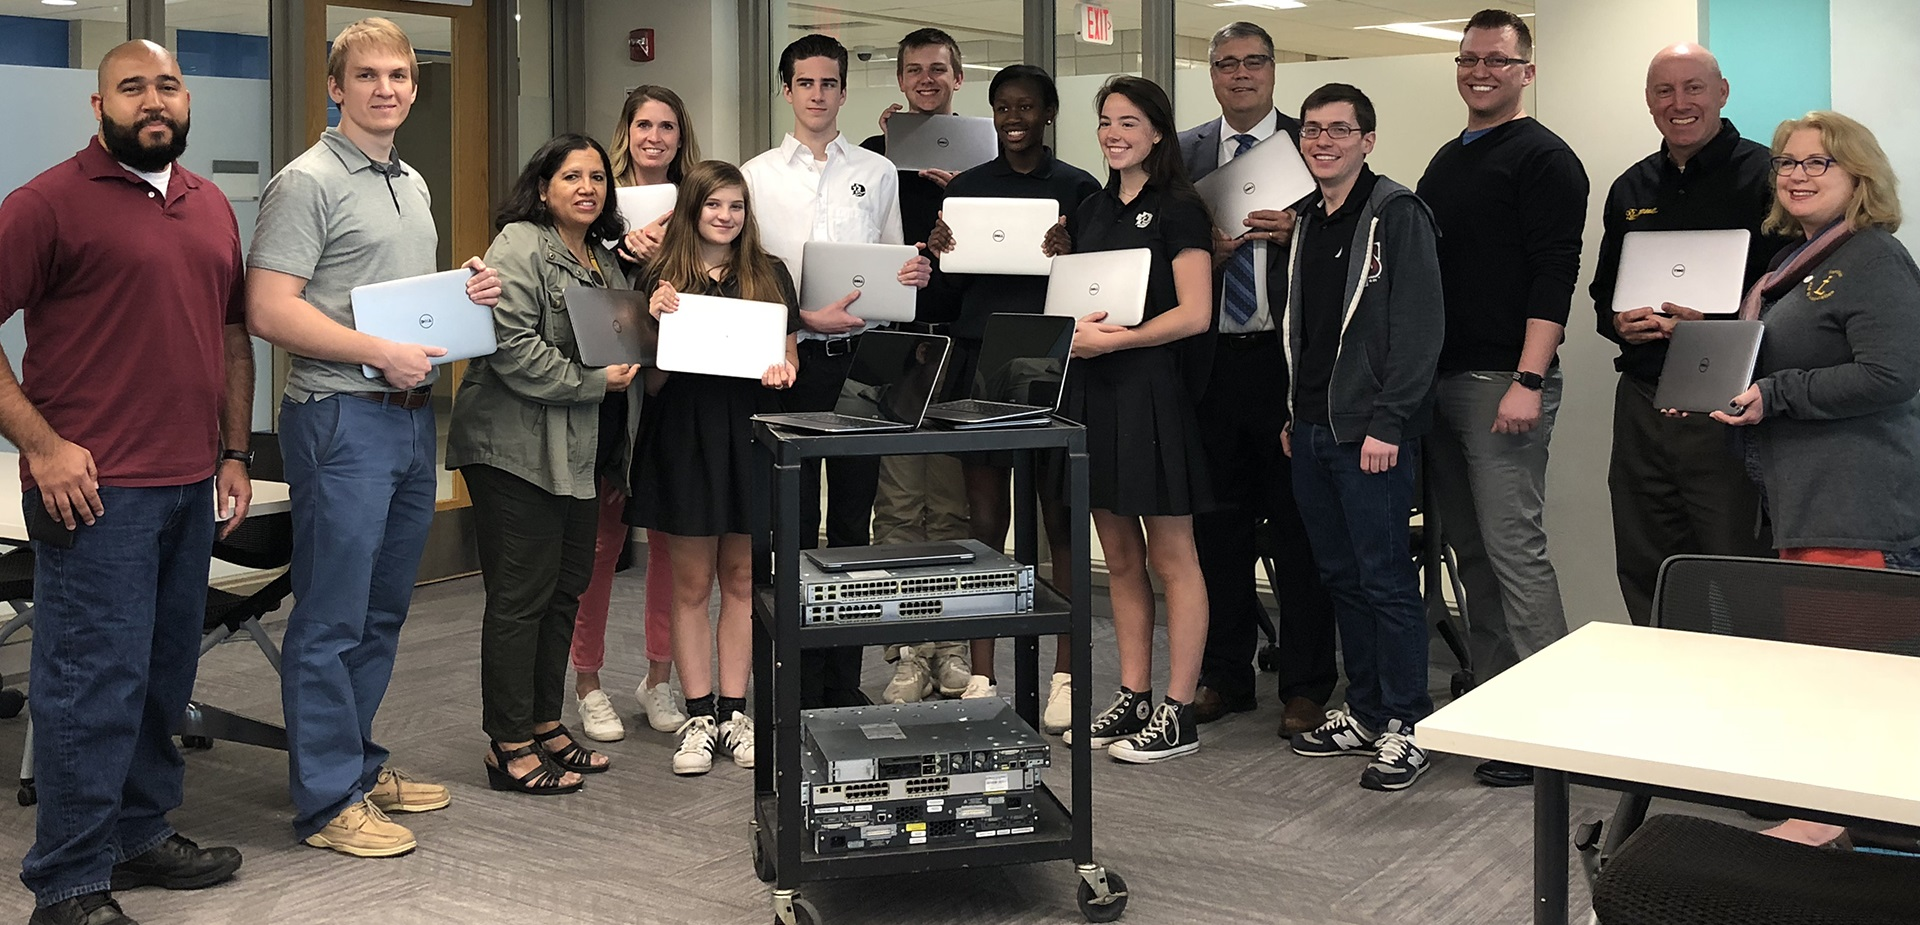 Donating laptop computers to DeLaSalle school in Minneapolis, MN